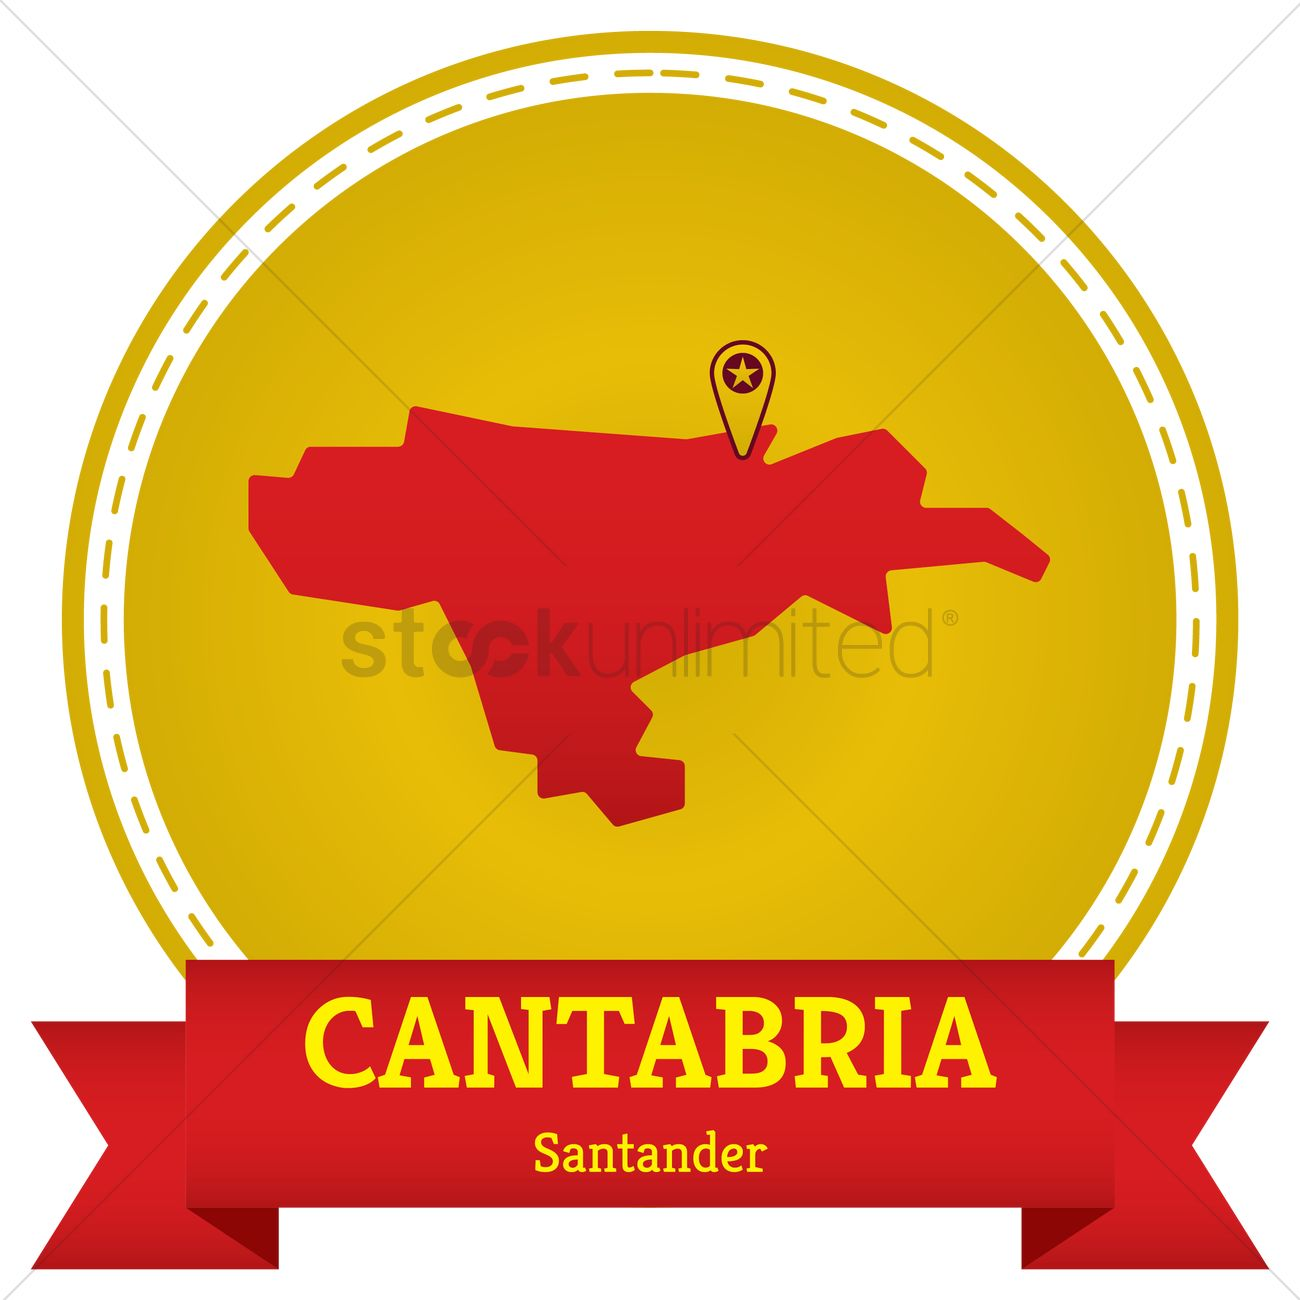 Cantabria clipart #4, Download drawings